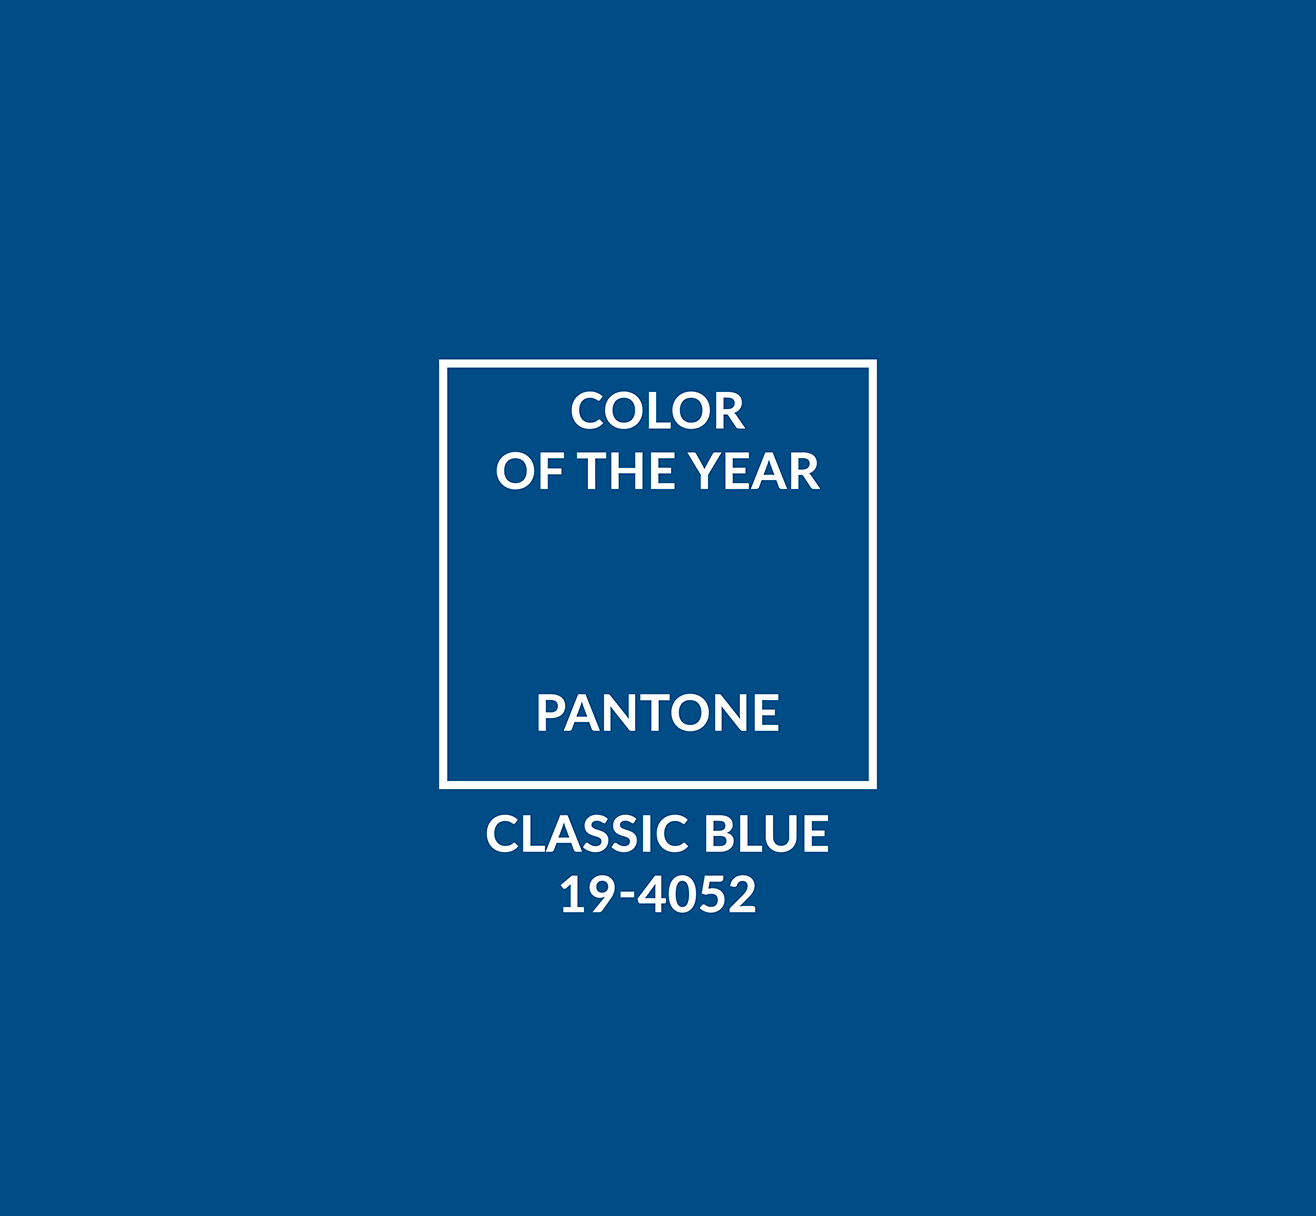 Pantone's color of the year is Classic Blue | In And Out by FillMed